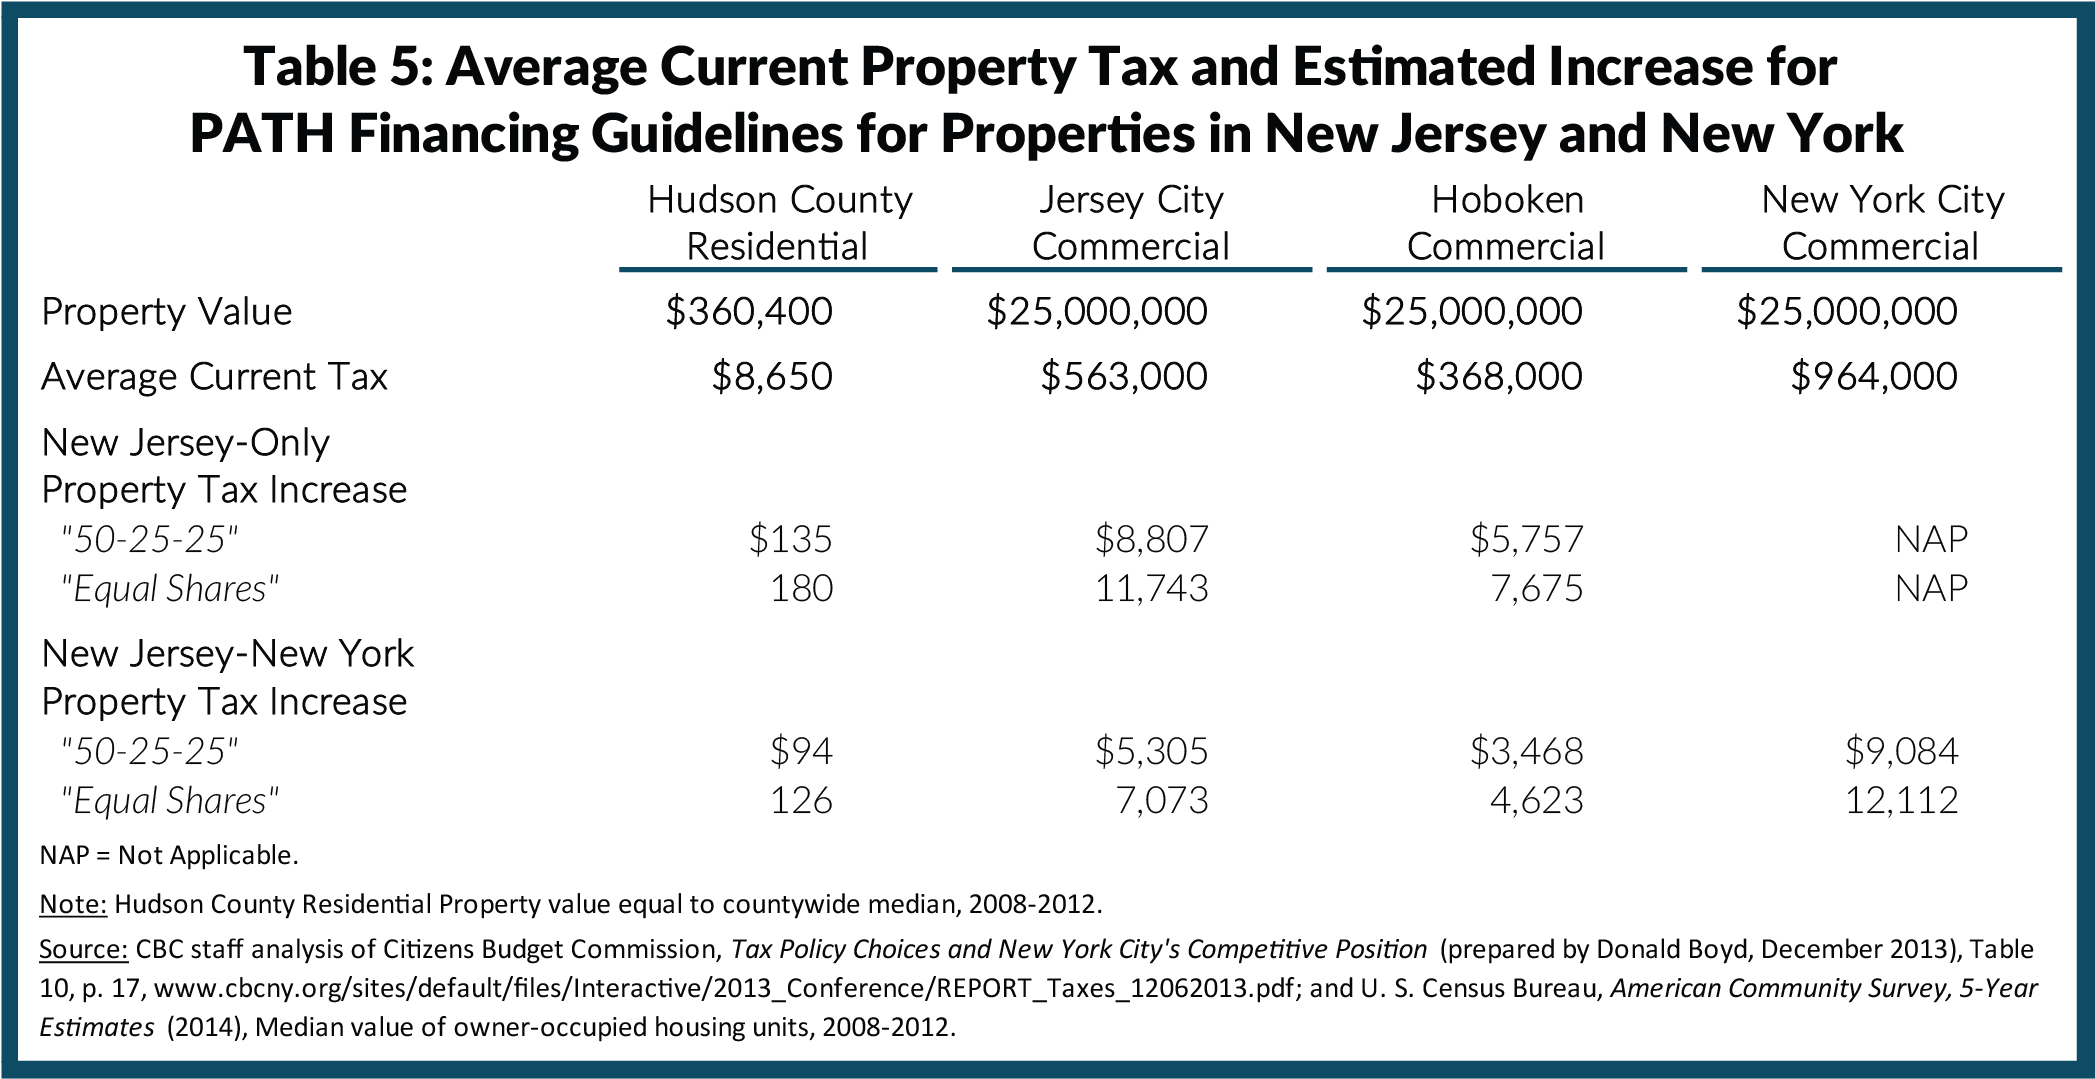 Table 5: Average Current Property Tax and Estimated Increase for PATH Financing Guidelines for Properties in New Jersey and New York